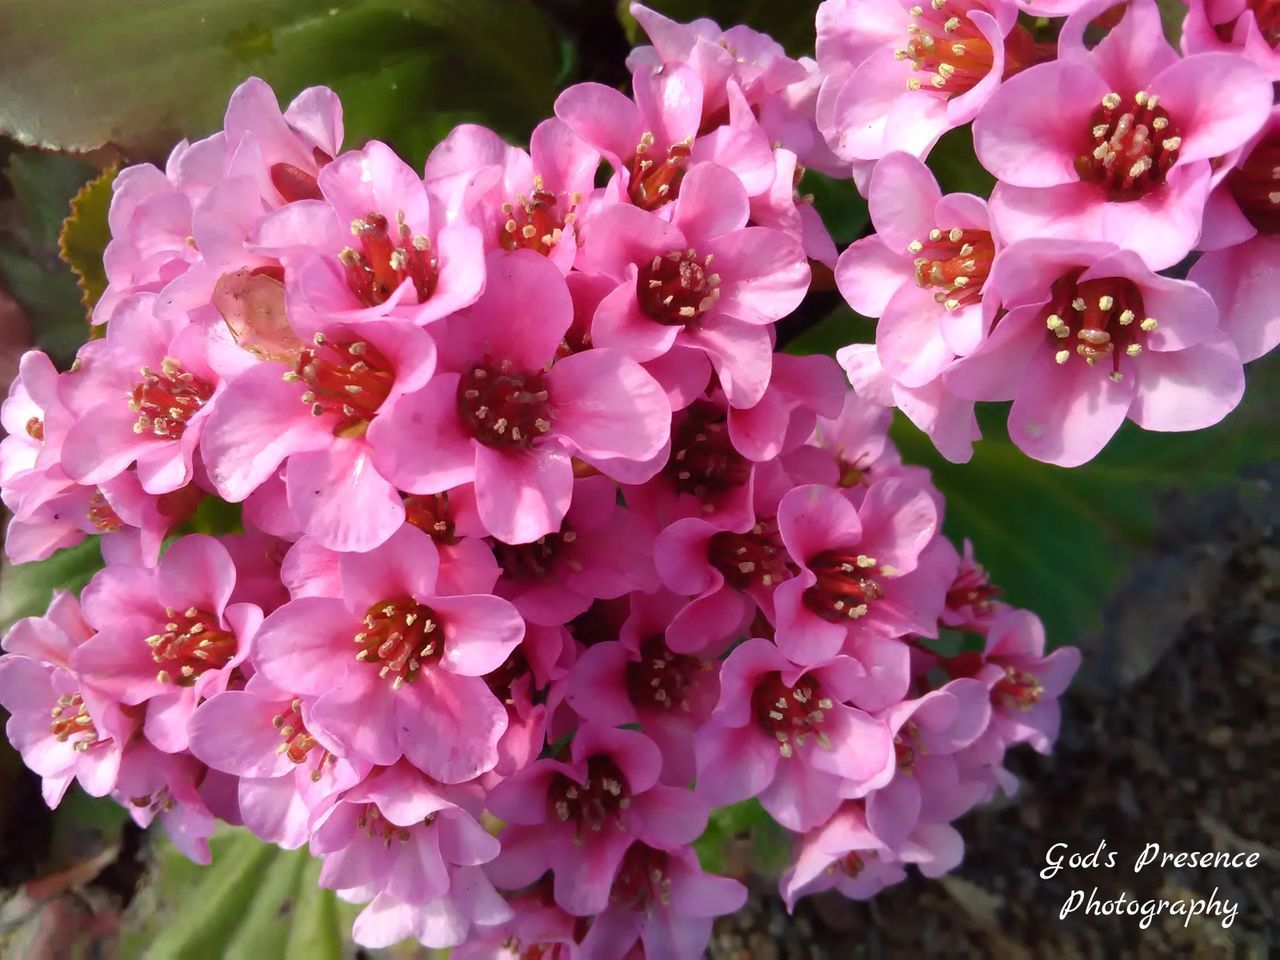 flower, nature, beauty in nature, petal, fragility, growth, plant, outdoors, no people, pink color, freshness, close-up, day, flower head